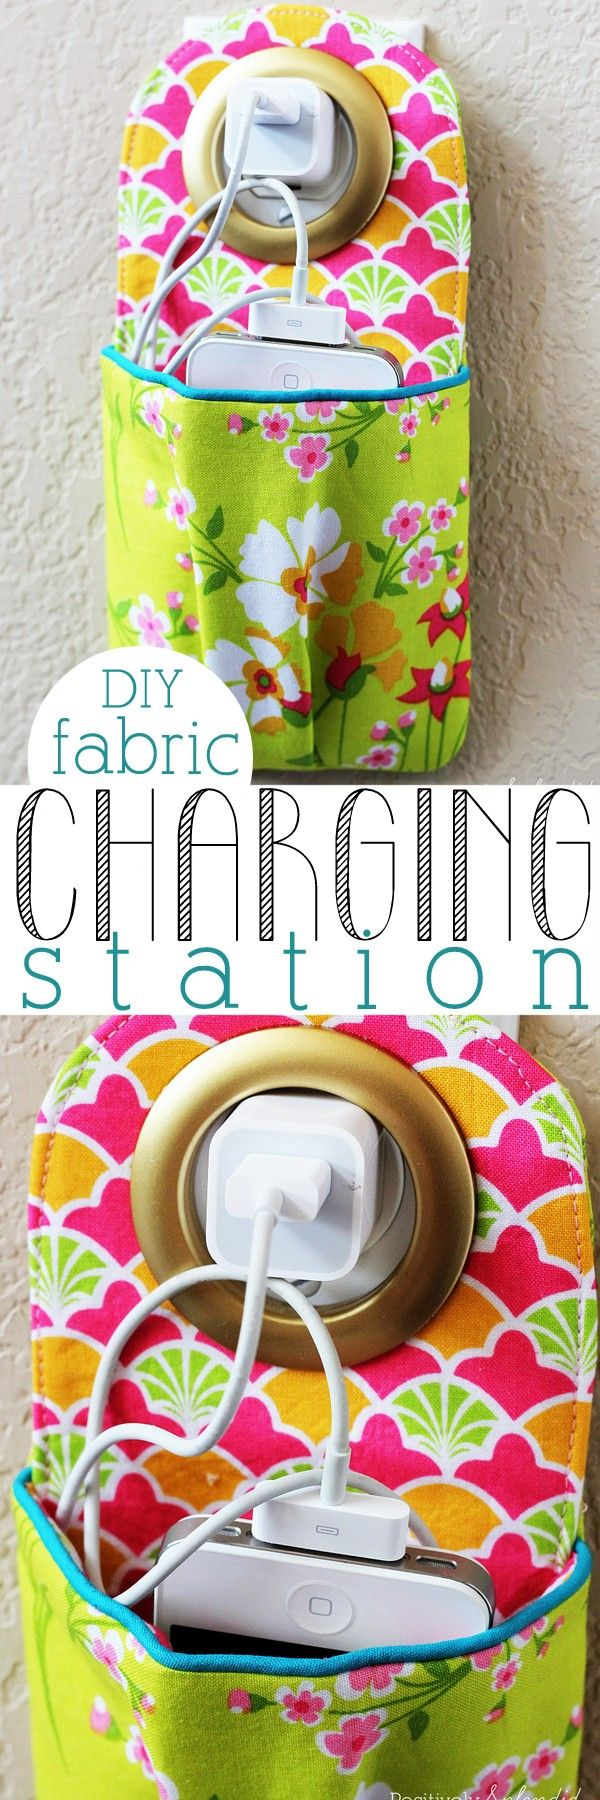 Make It: Hanging Phone Charging Station - Free Pattern & Tutorial #sewing